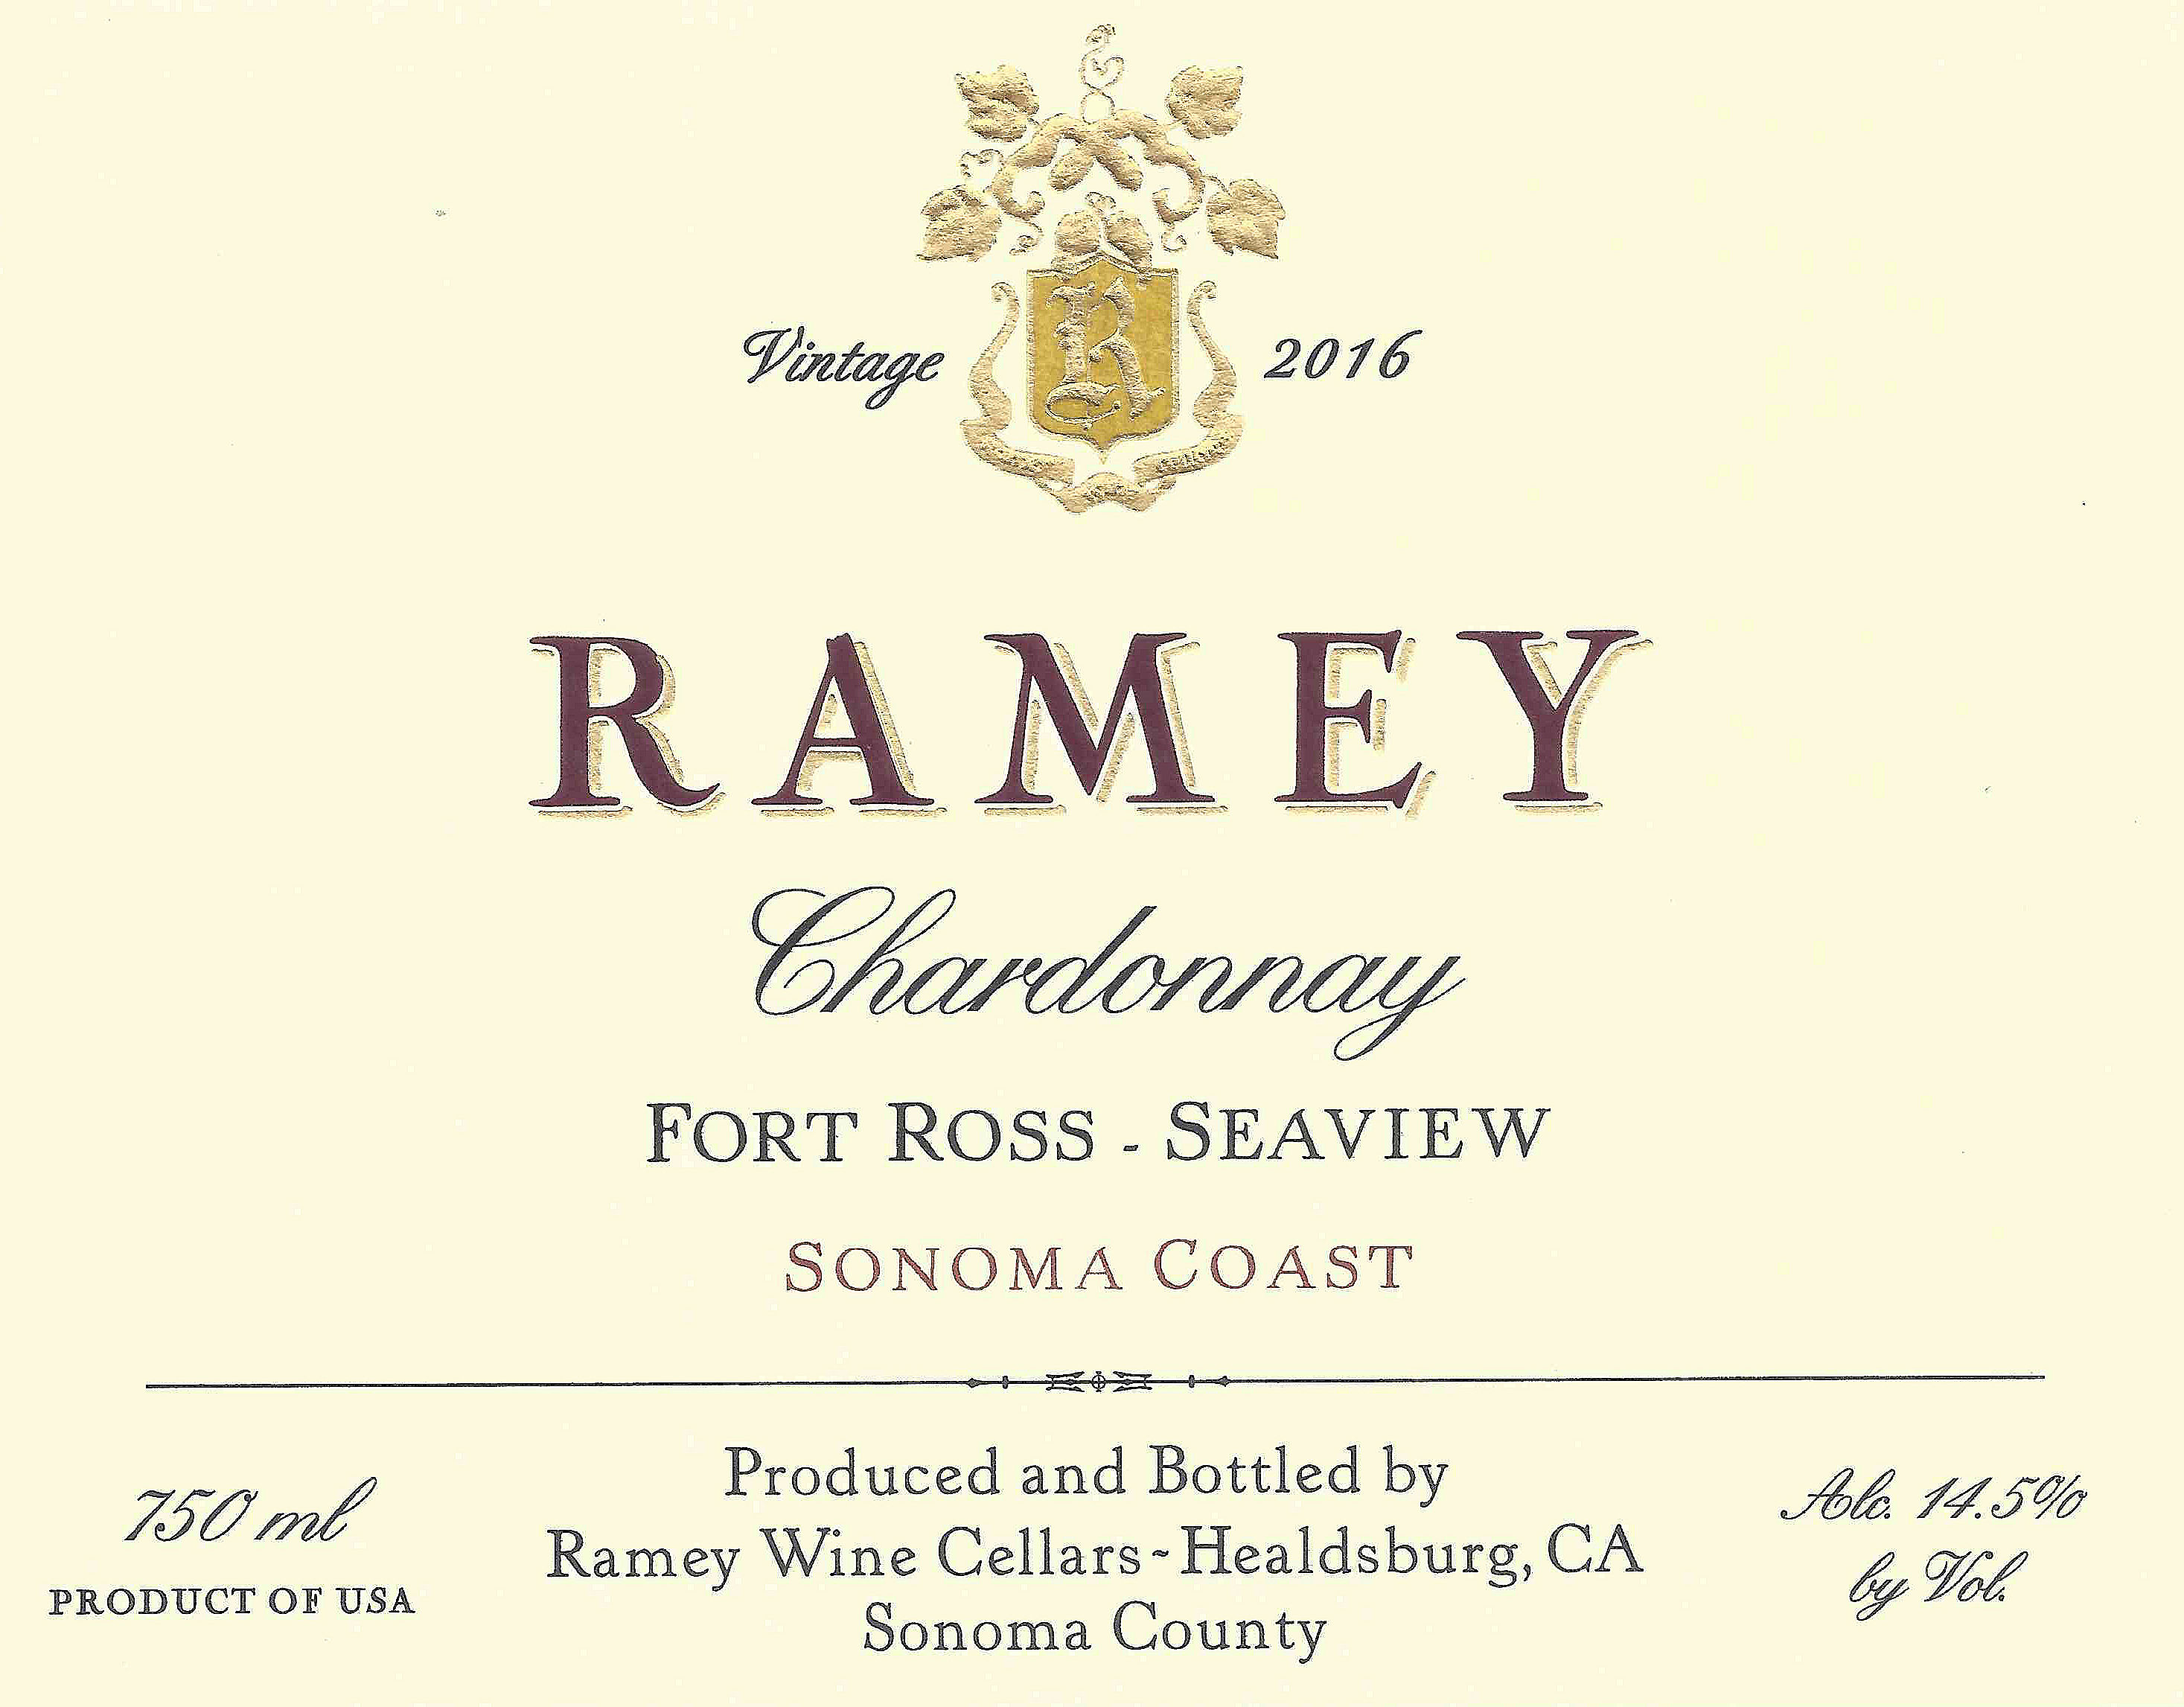 2016 Ramey Chardonnay Fort Ross-Seaview